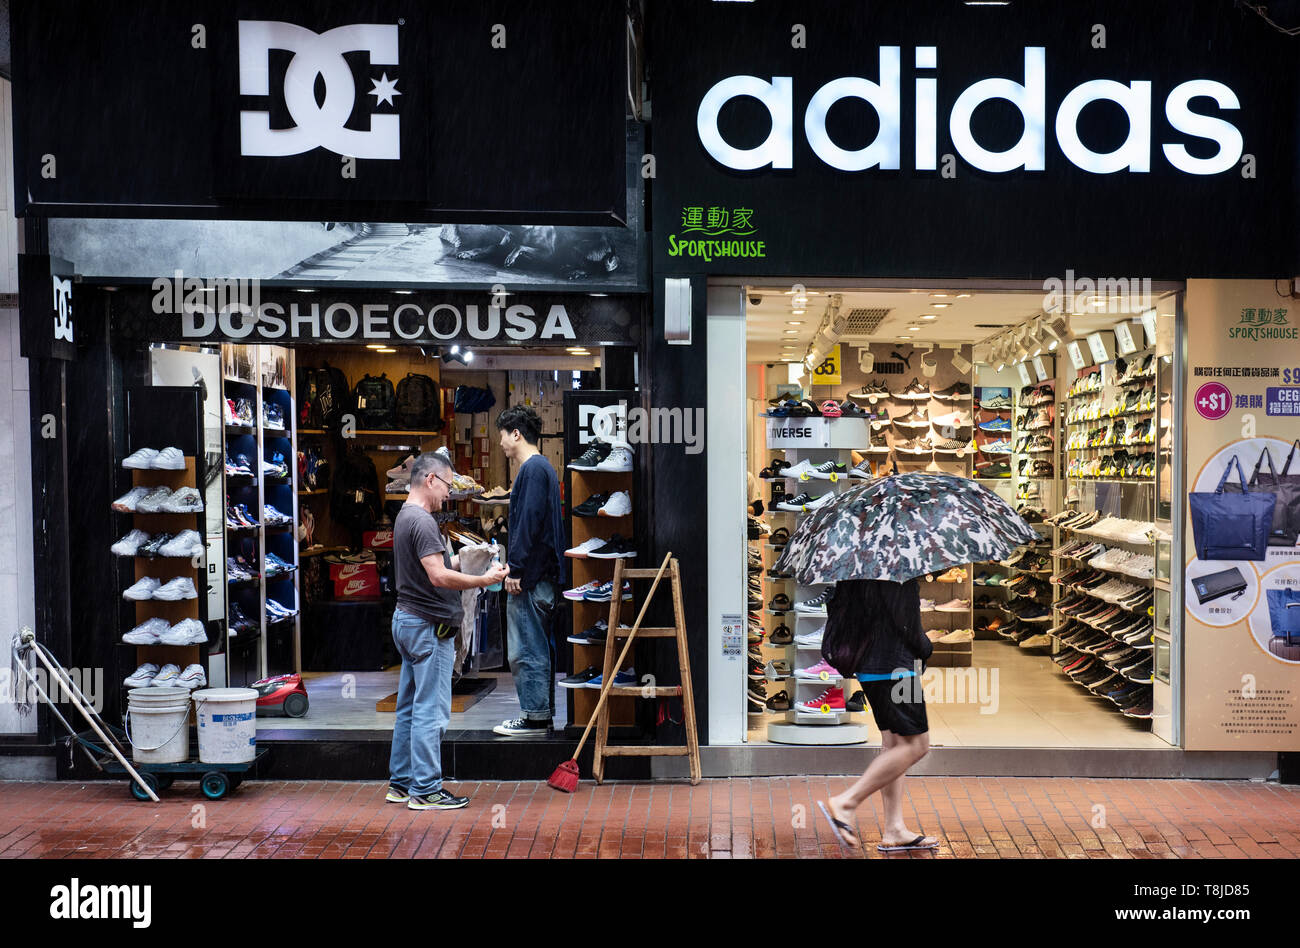 Adidas and DC Shoes stores seen in Hong Kong Stock Photo